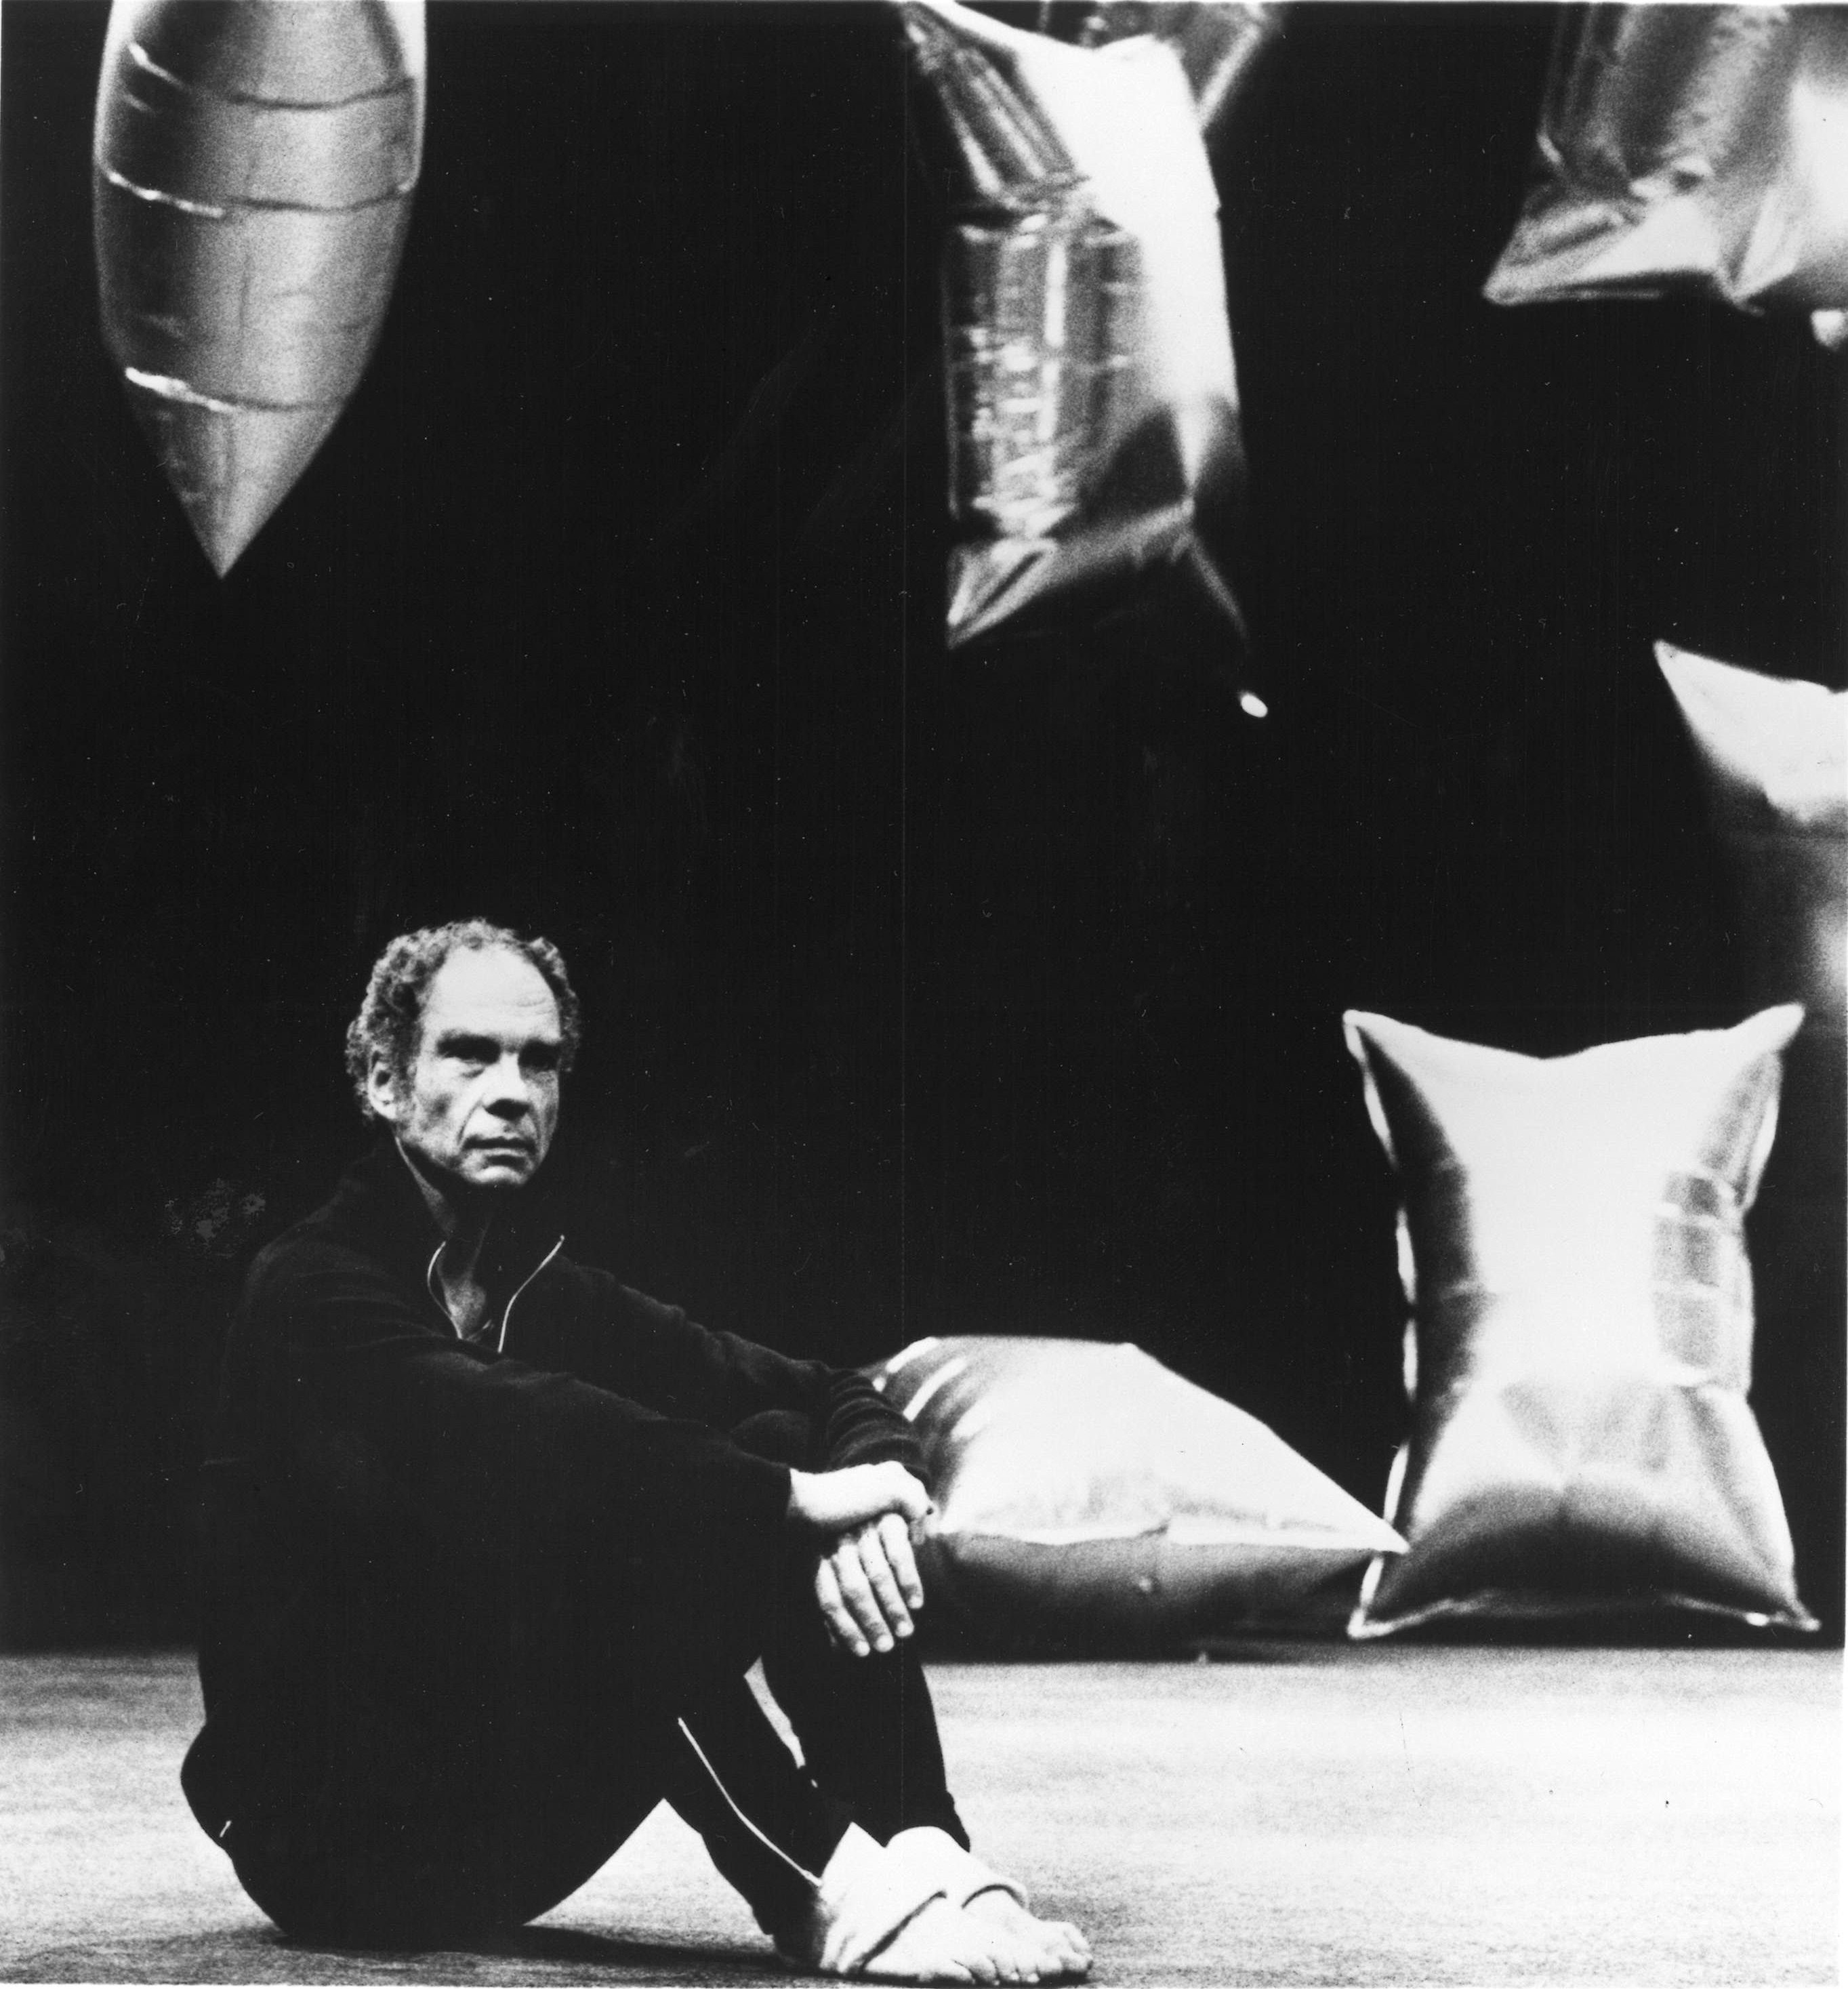 Merce Cunningham, in a black tracksuit, sits with his knees pulled up onstage. Behind him, the silver balloons designed by Andy Warhol for Cunningham's RainForest.